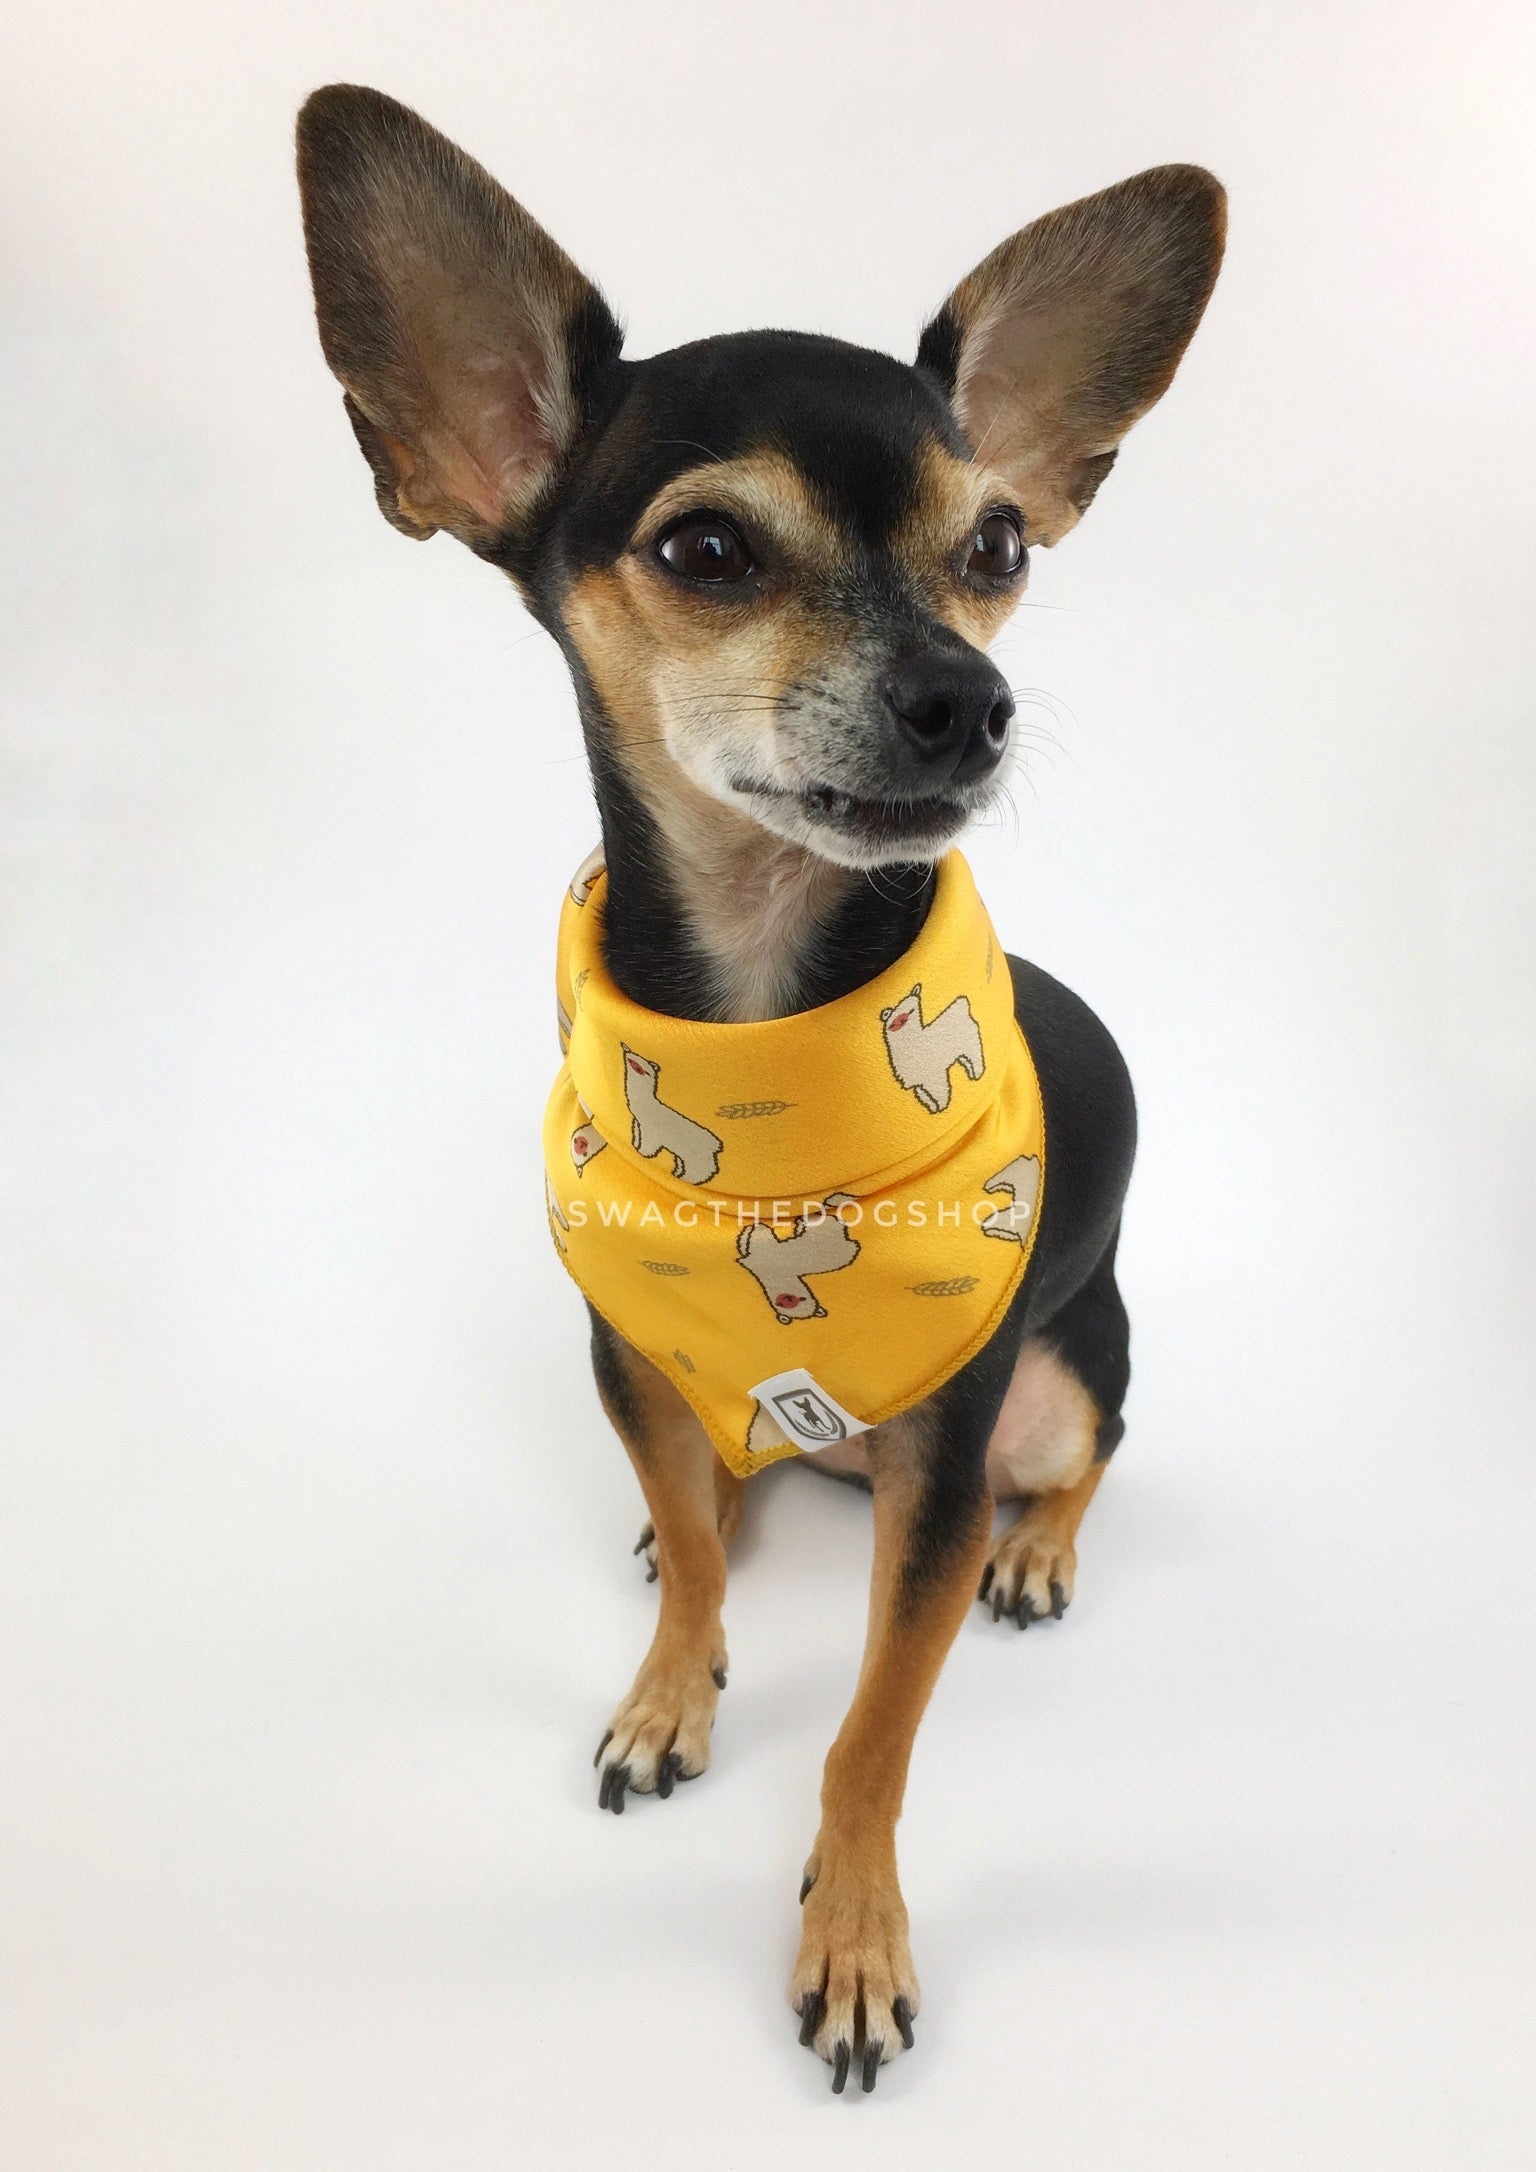 Lorenzo Llama Yellow Swagdana Scarf - Full Front View of Cute Chihuahua Wearing Swagdana Scarf as Bandana. Dog Bandana. Dog Scarf.